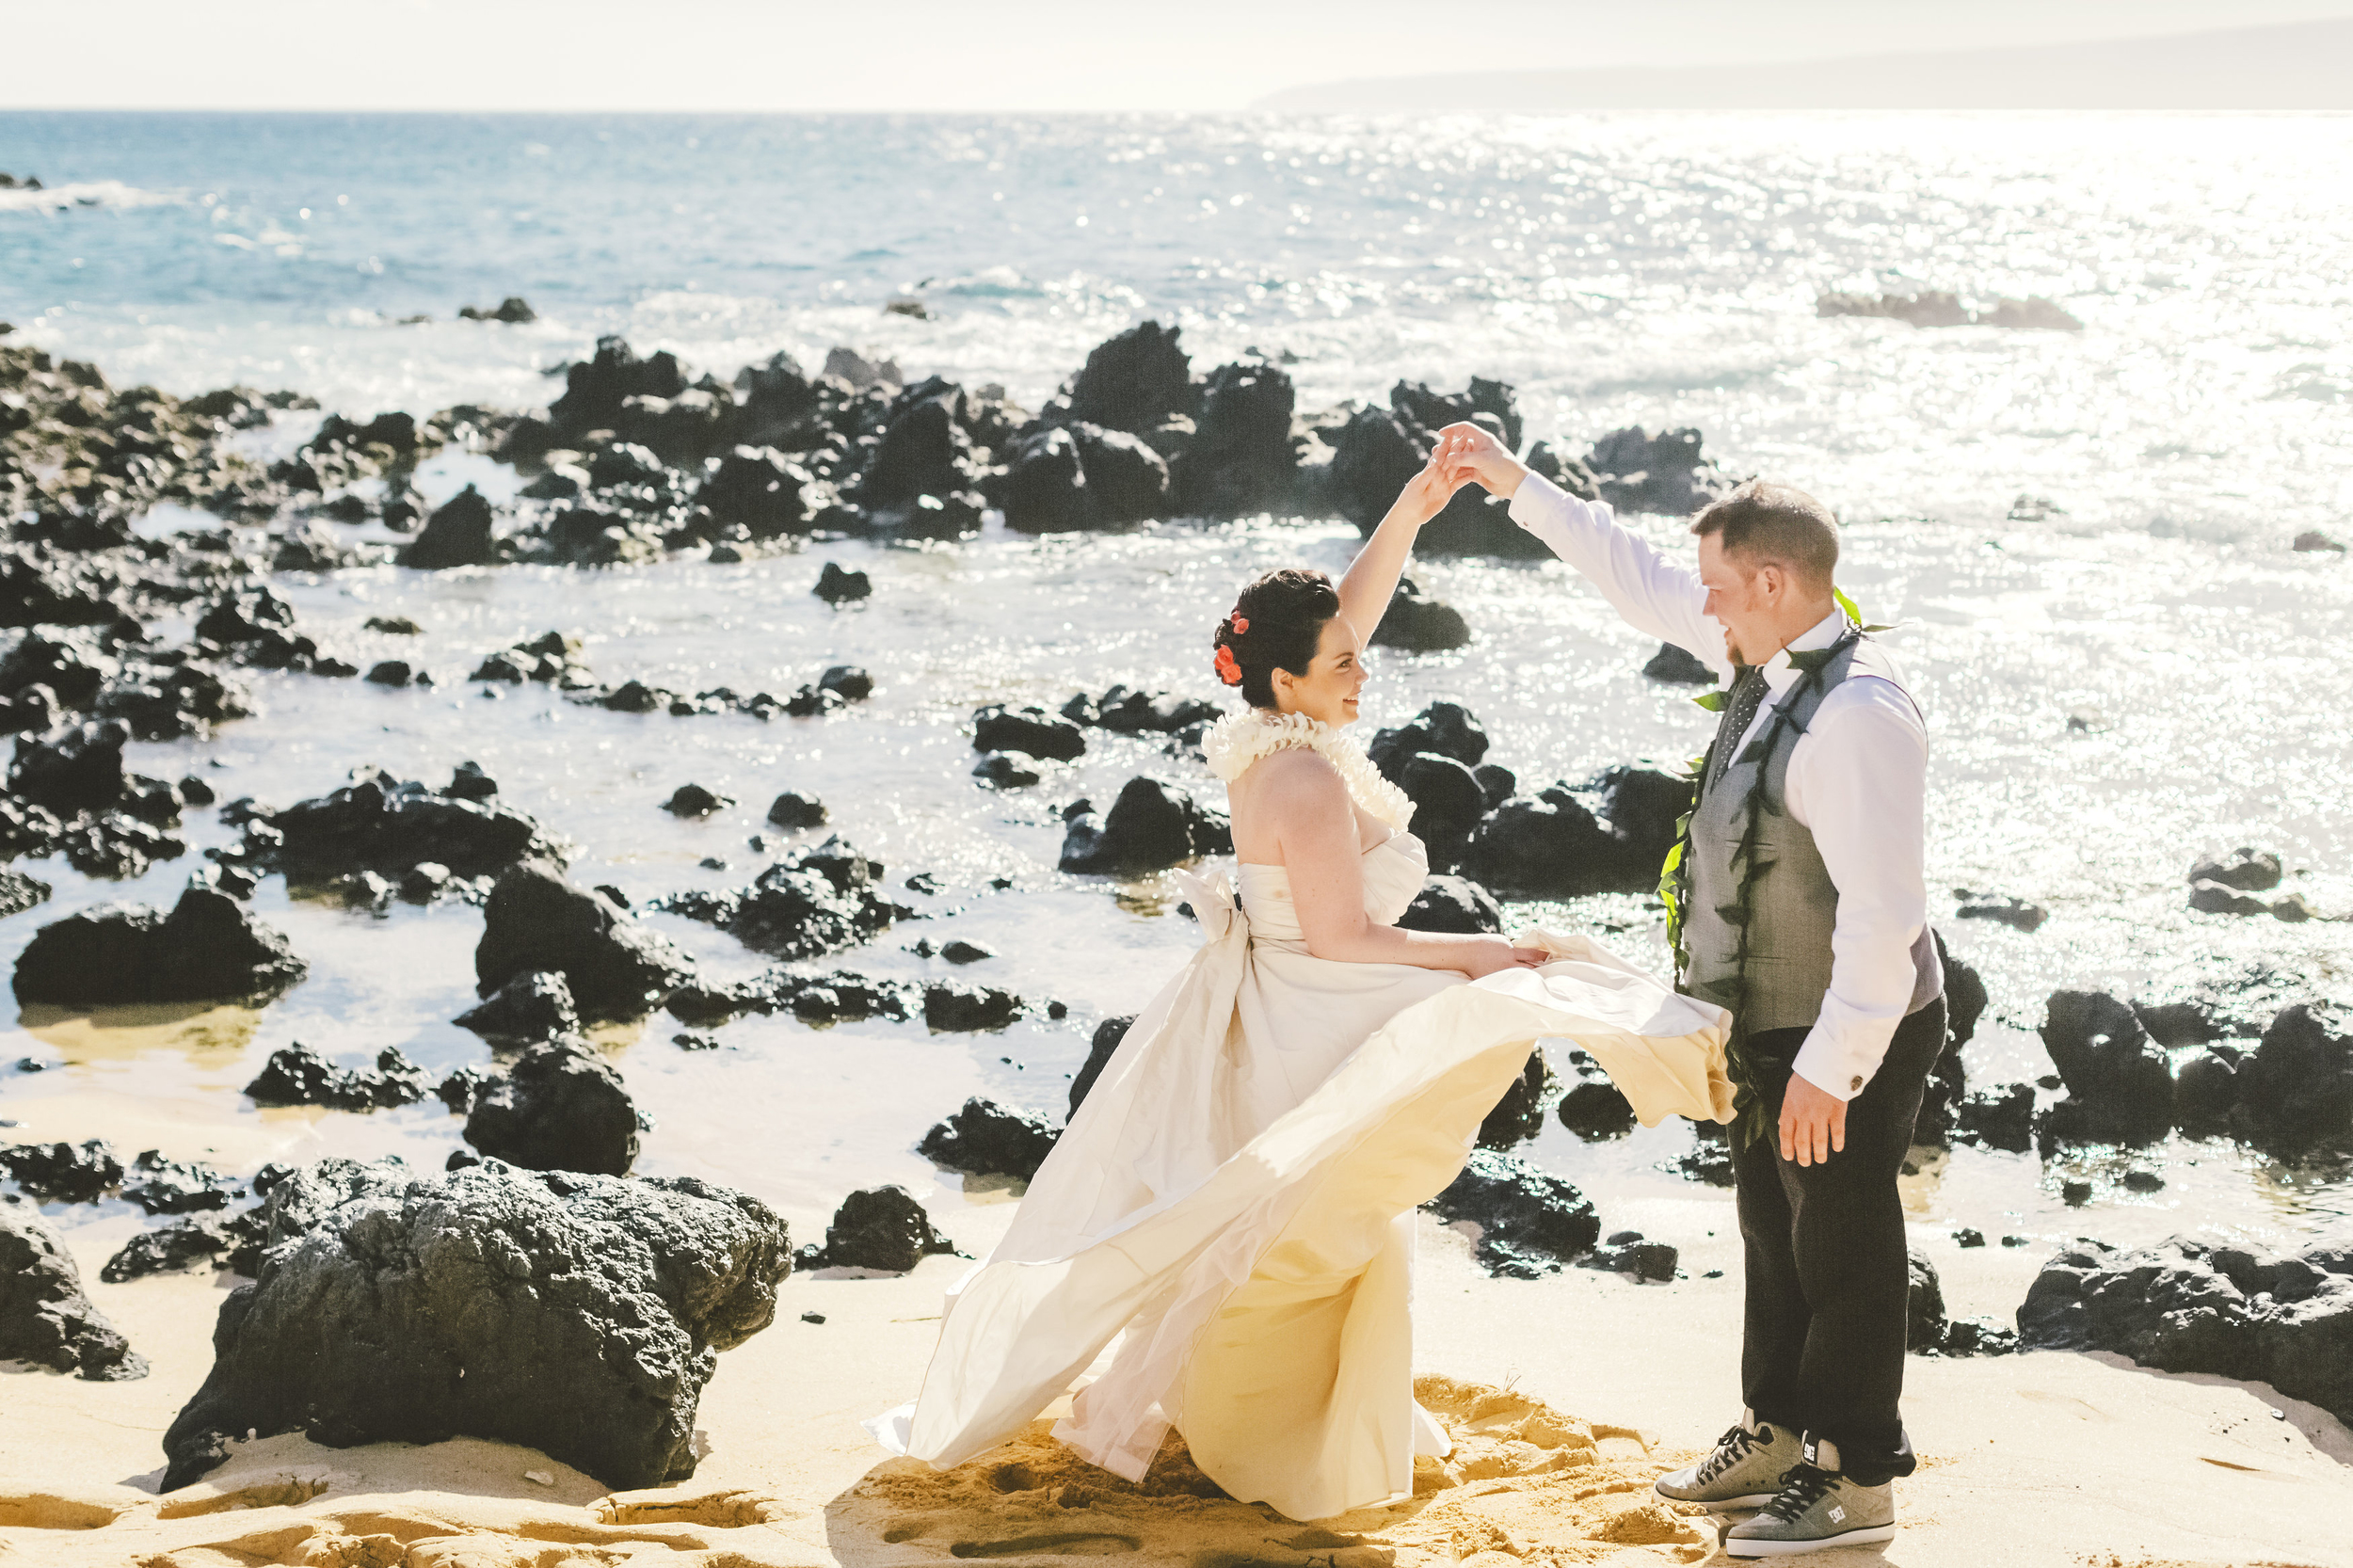 angie-diaz-photography-maui-elopement-39.jpg